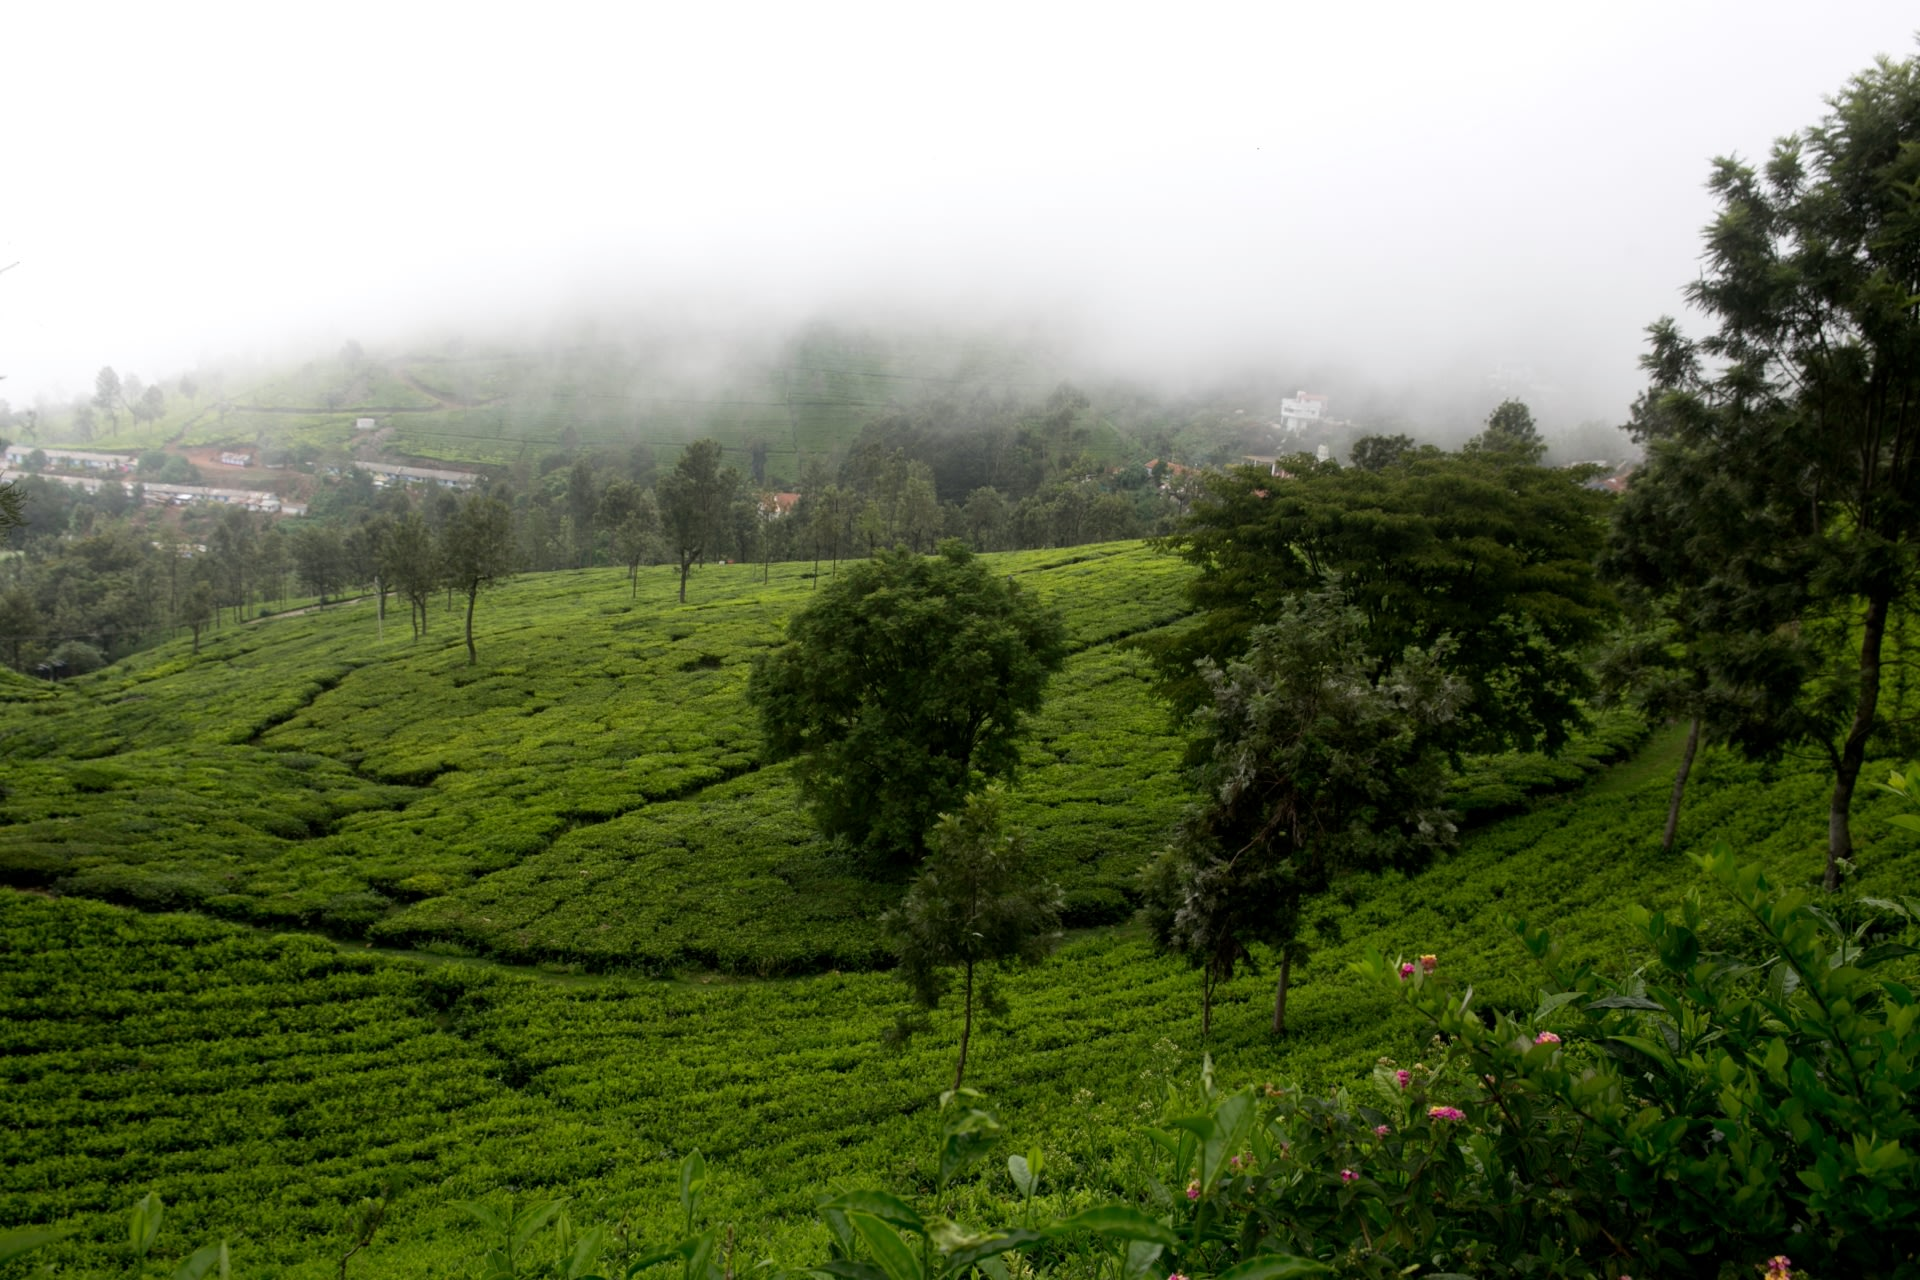 Coonoor in Tamil Nadu is a misty hill station surrounded by the lush green Nilgiri hills, interspersed with tea plantations, ravines, valleys and waterfalls. Photo: Jalebiji/ Shutterstock  The Malabar pied hornbill is commonly recognised by its yellow bill with a black base and an oversized yellow and black casque on the top of it. The casque amplifies the nasal sounds the bird makes and also acts as an indicator of sexual maturity. Photo: Rajan Hatiskar / CC BY-SA 4.0